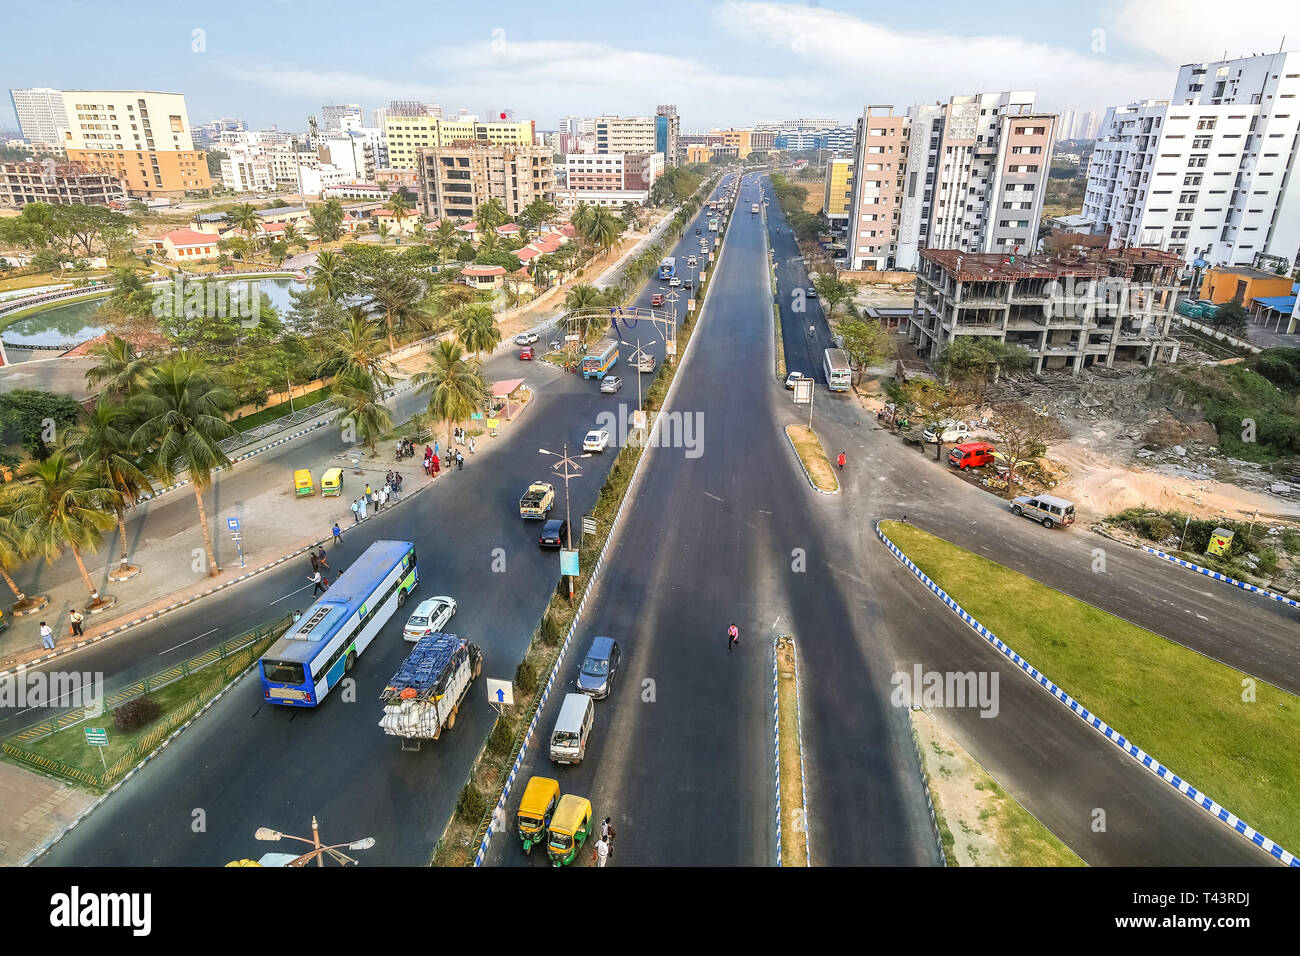 Aerial view of city architecture with buildings and high rises along with city roads with traffic at Kolkata India. - Stock Image